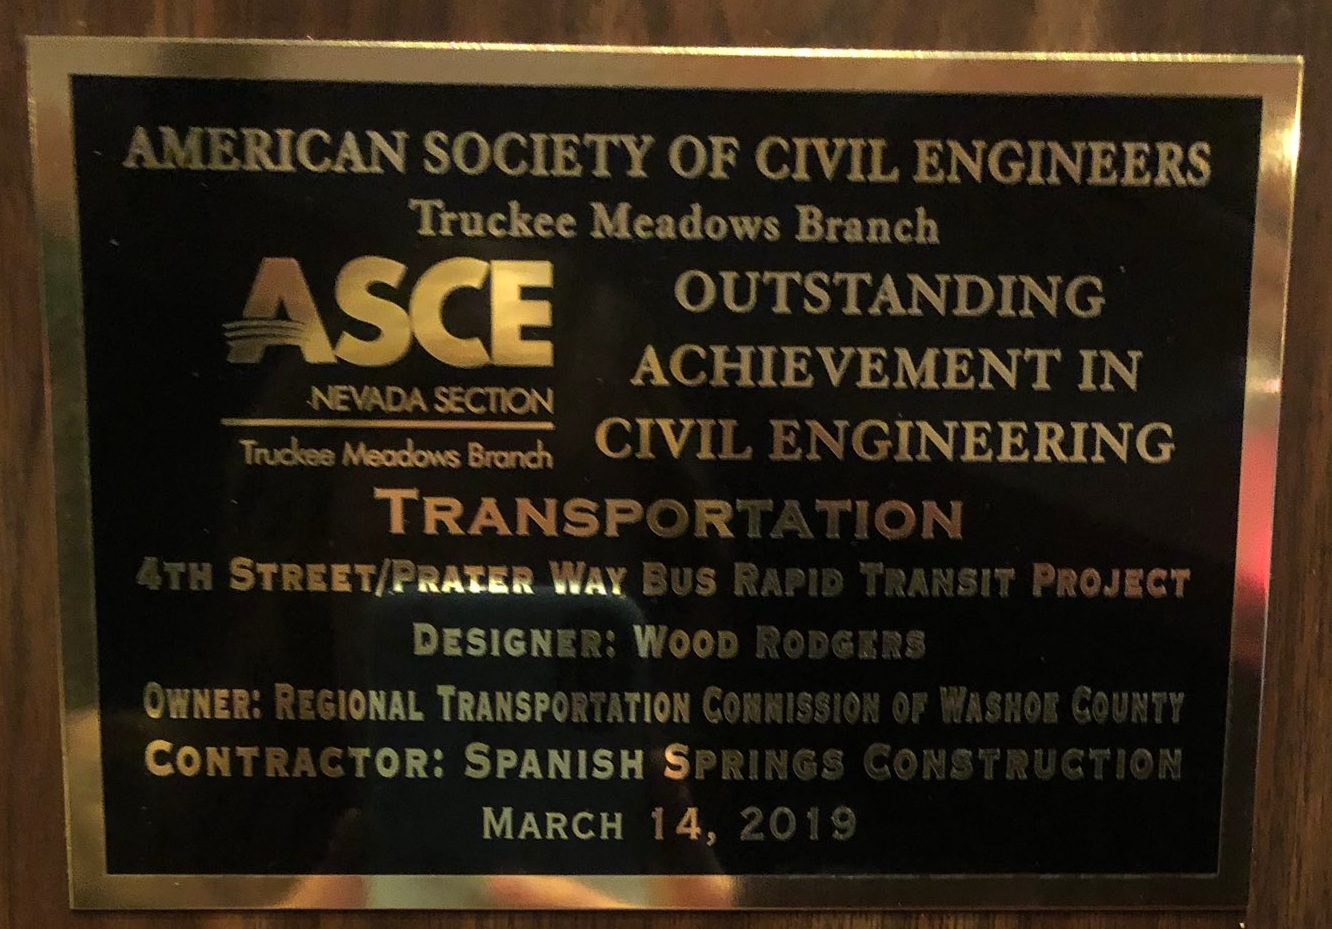 Awarded   2018 Transportation Project of the Year   by Truckee Meadows Branch of American Society of Civil Engineers (ASCE)